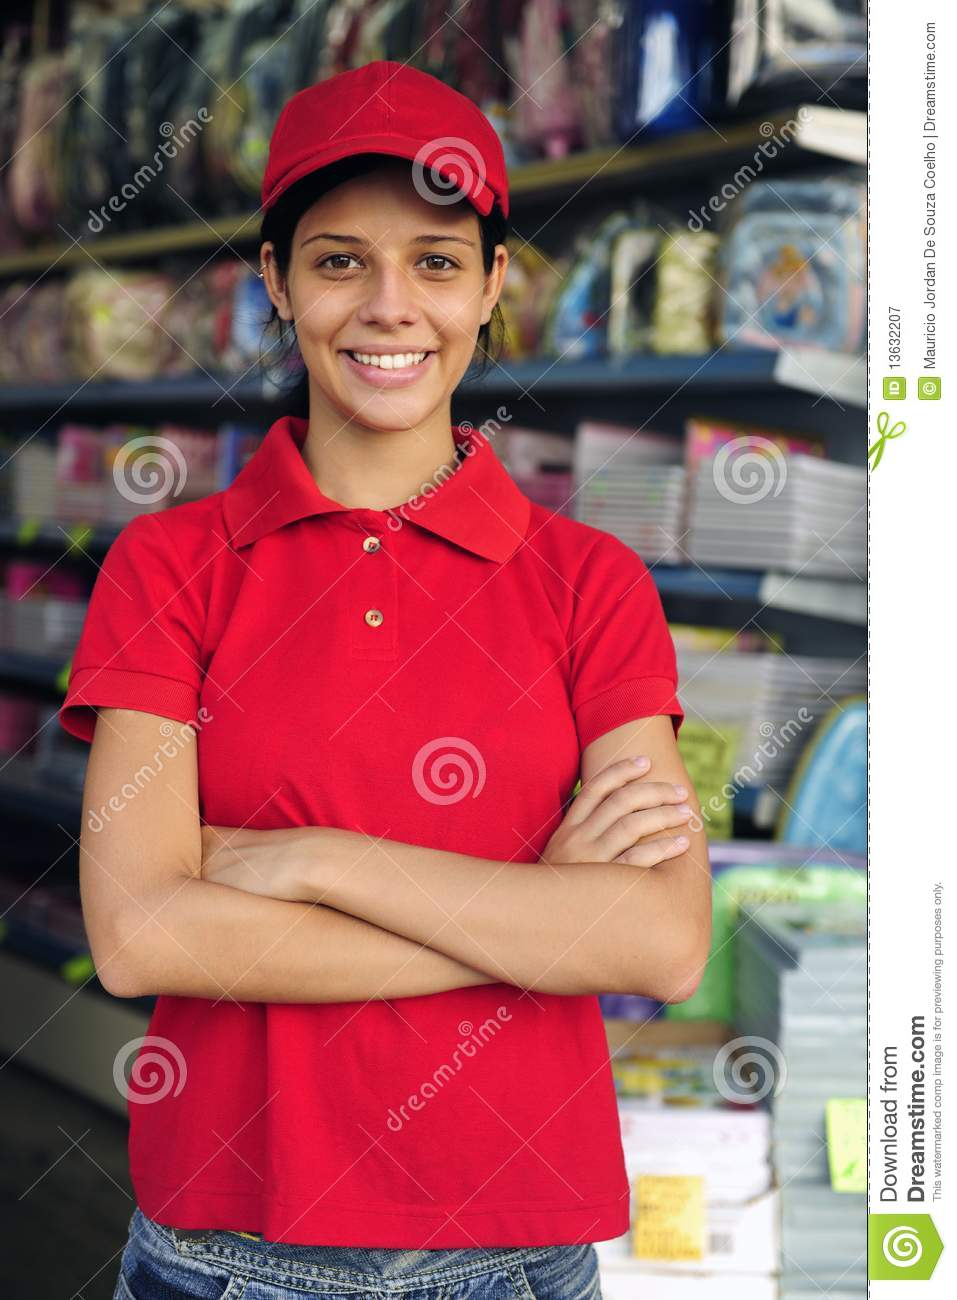 Royalty Free Stock Photo. Teenage Girl Working In A Stationery Shop Royalty Free Stock